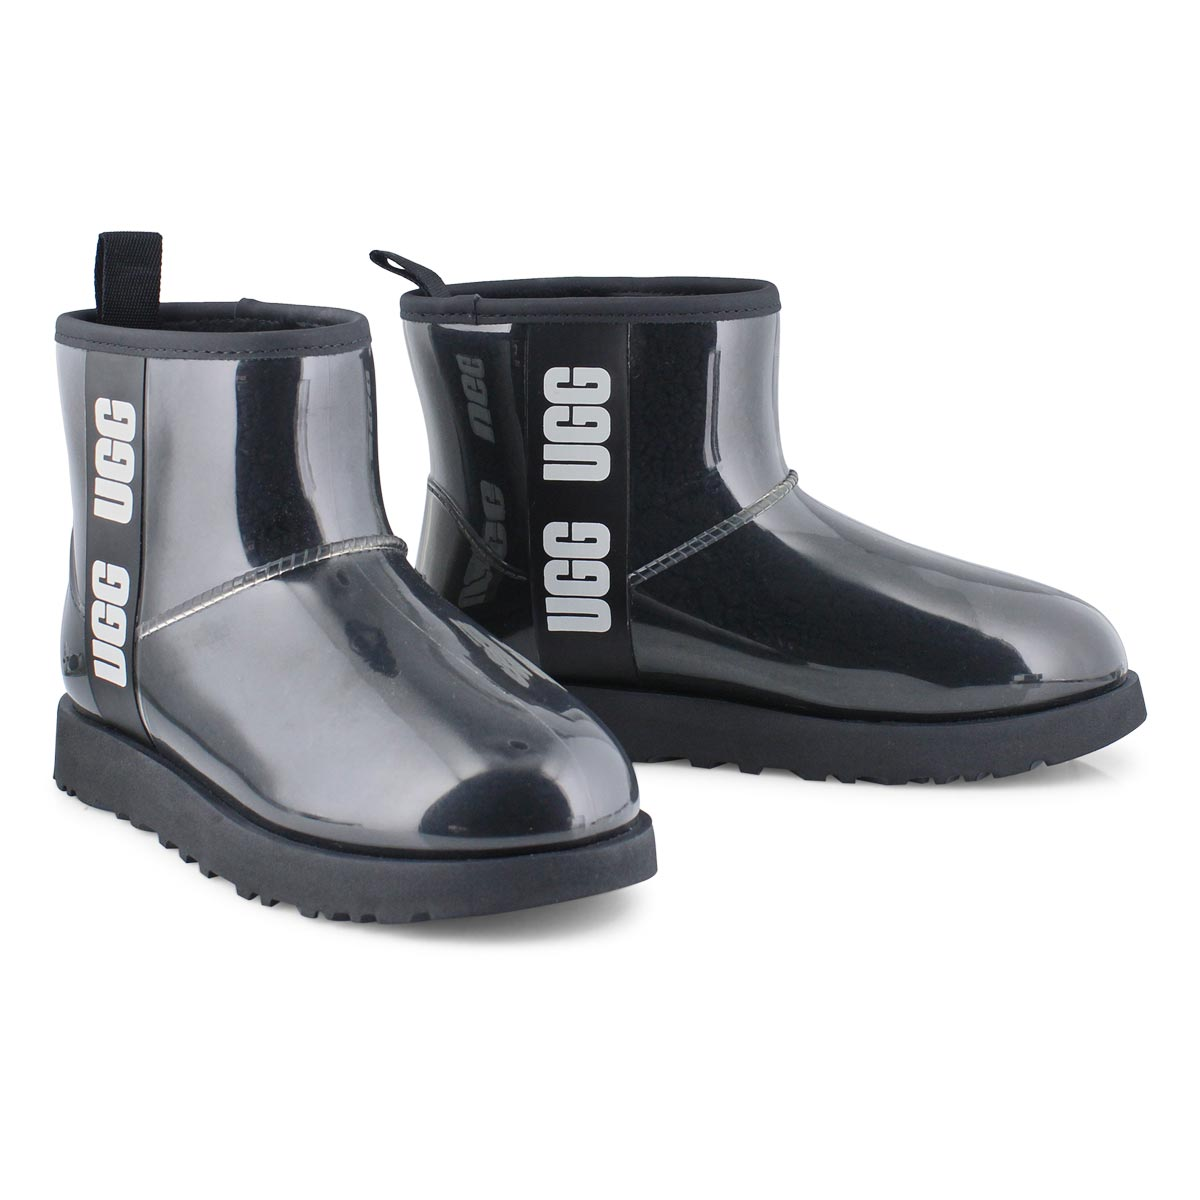 Lds Classic Clear Mini blk casual boot